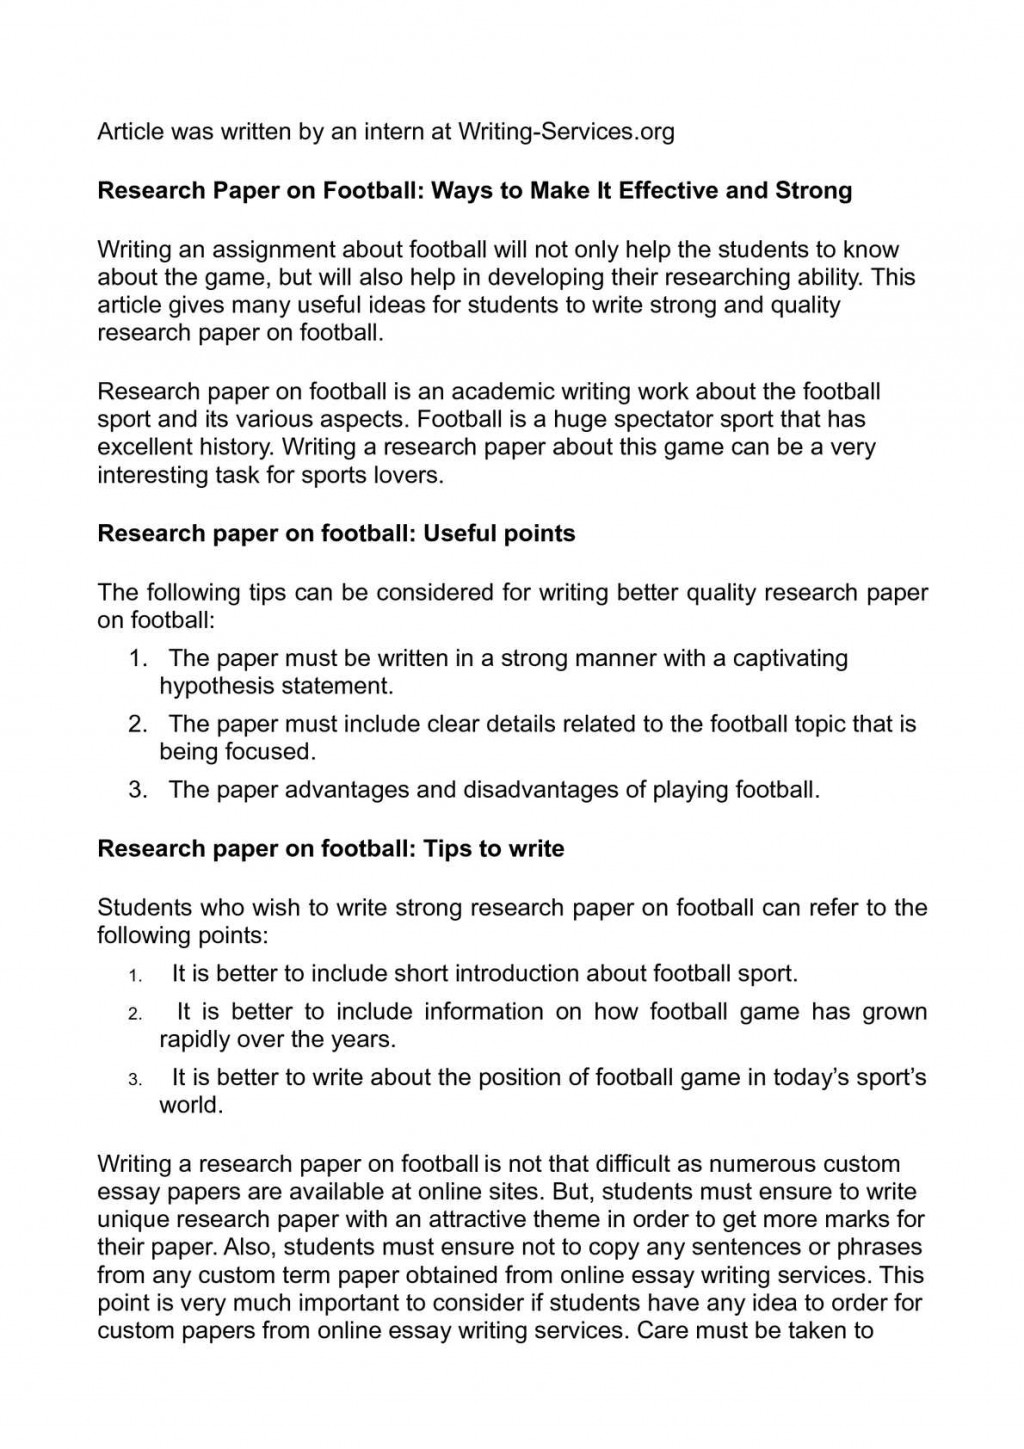 002 Research Paper Sport Topics Excellent Finance Sports Nutrition Injury Large